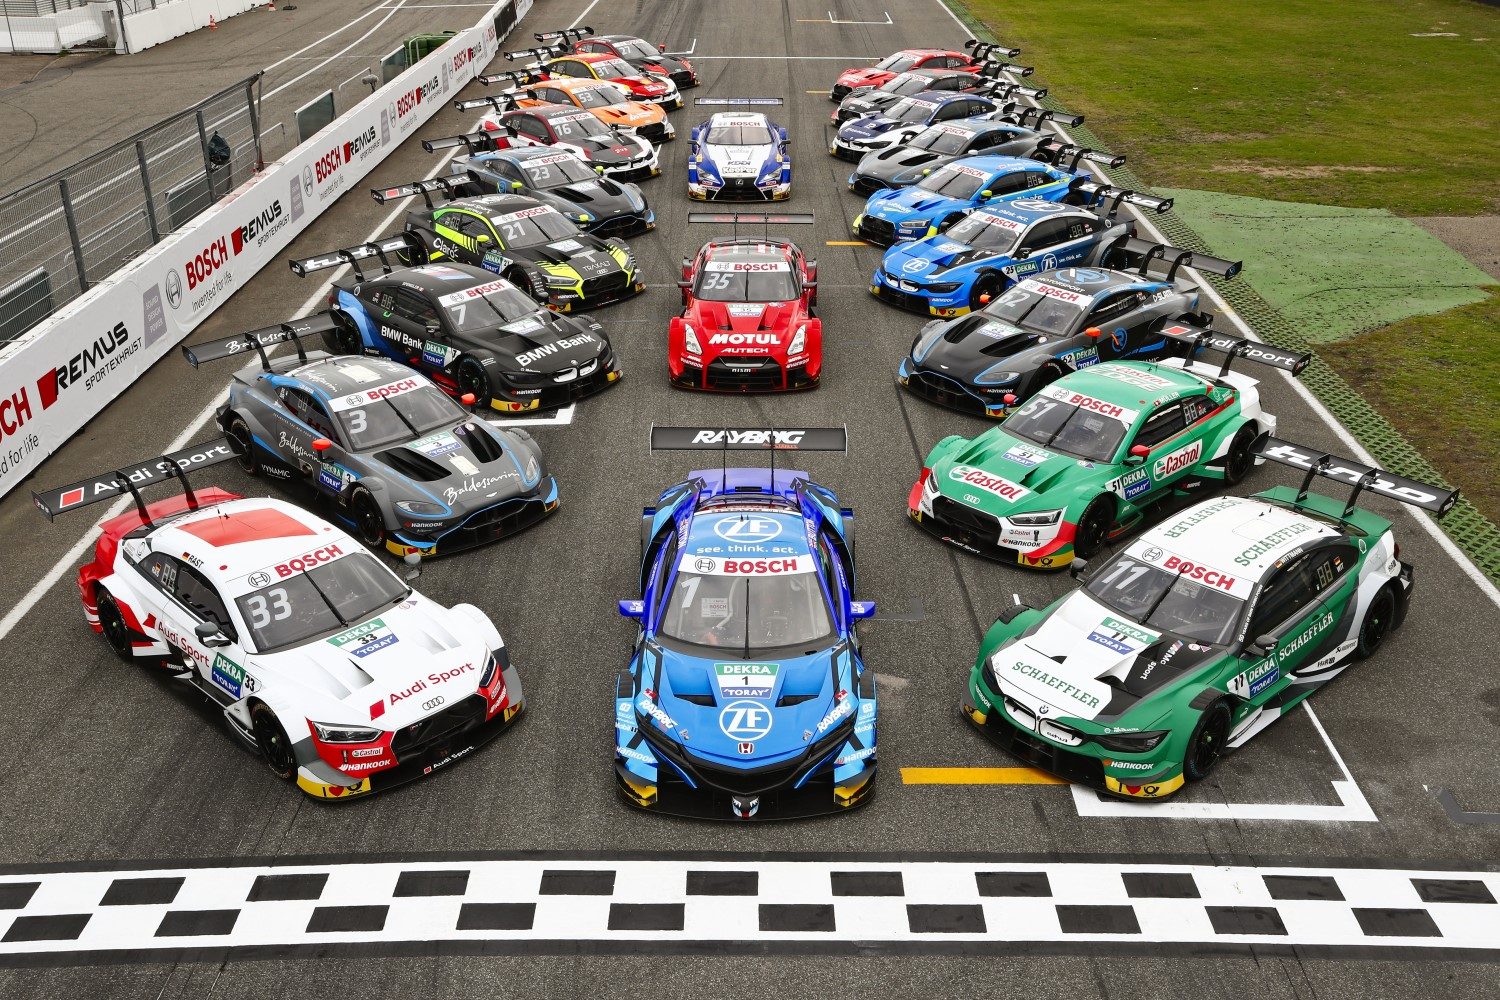 One week to go until landmark DTM & SUPER GT 'Dream Race' tie-up